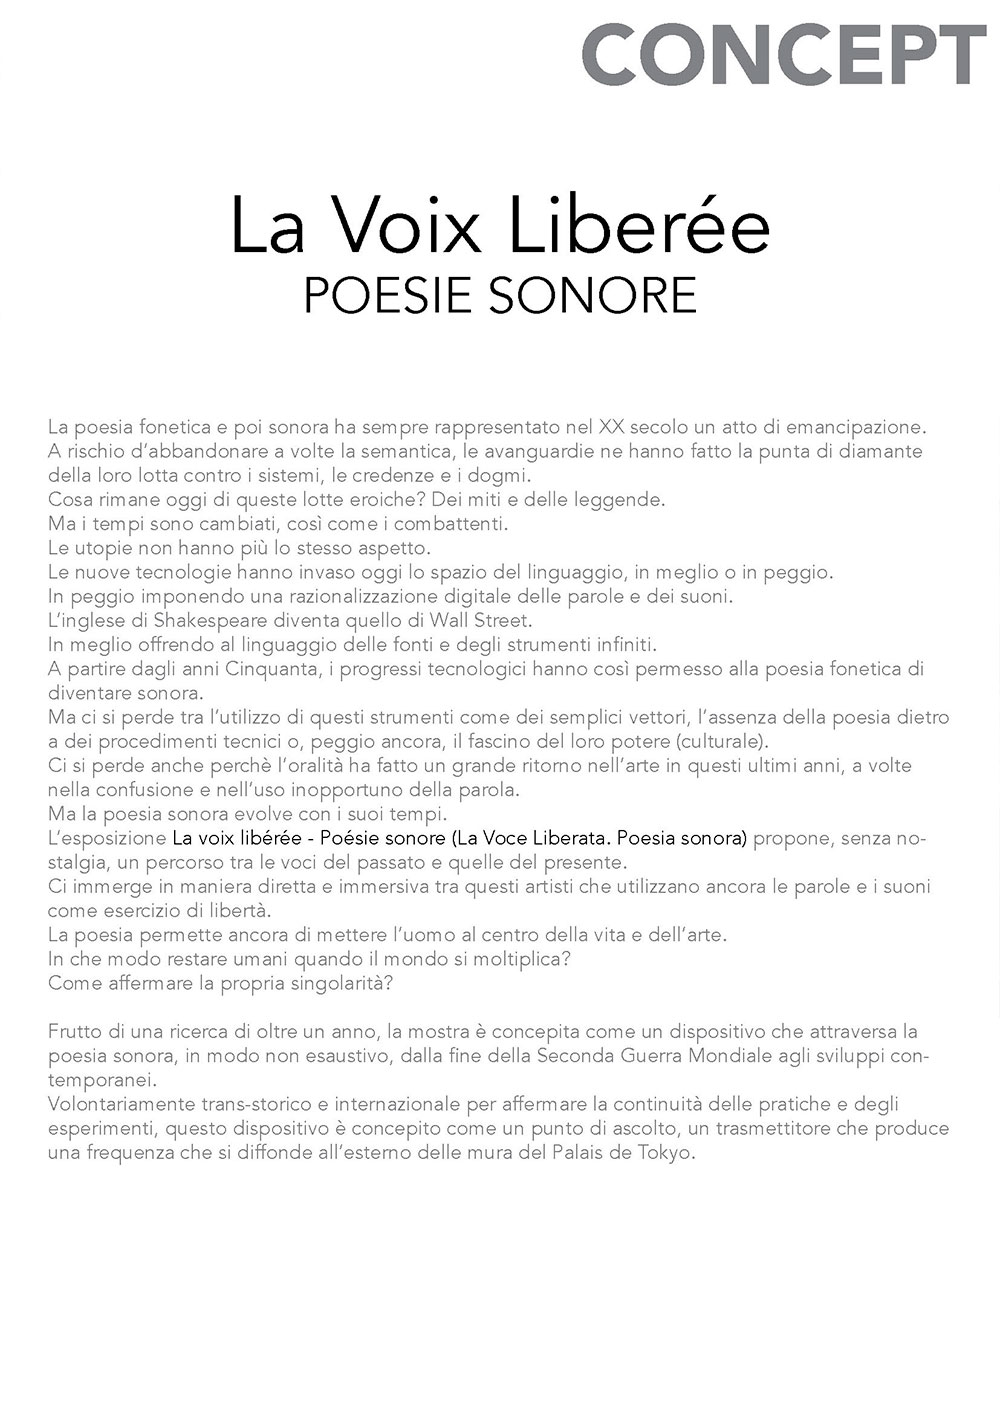 La-voix-libere-e.Poesie-sonore.PRESS-07